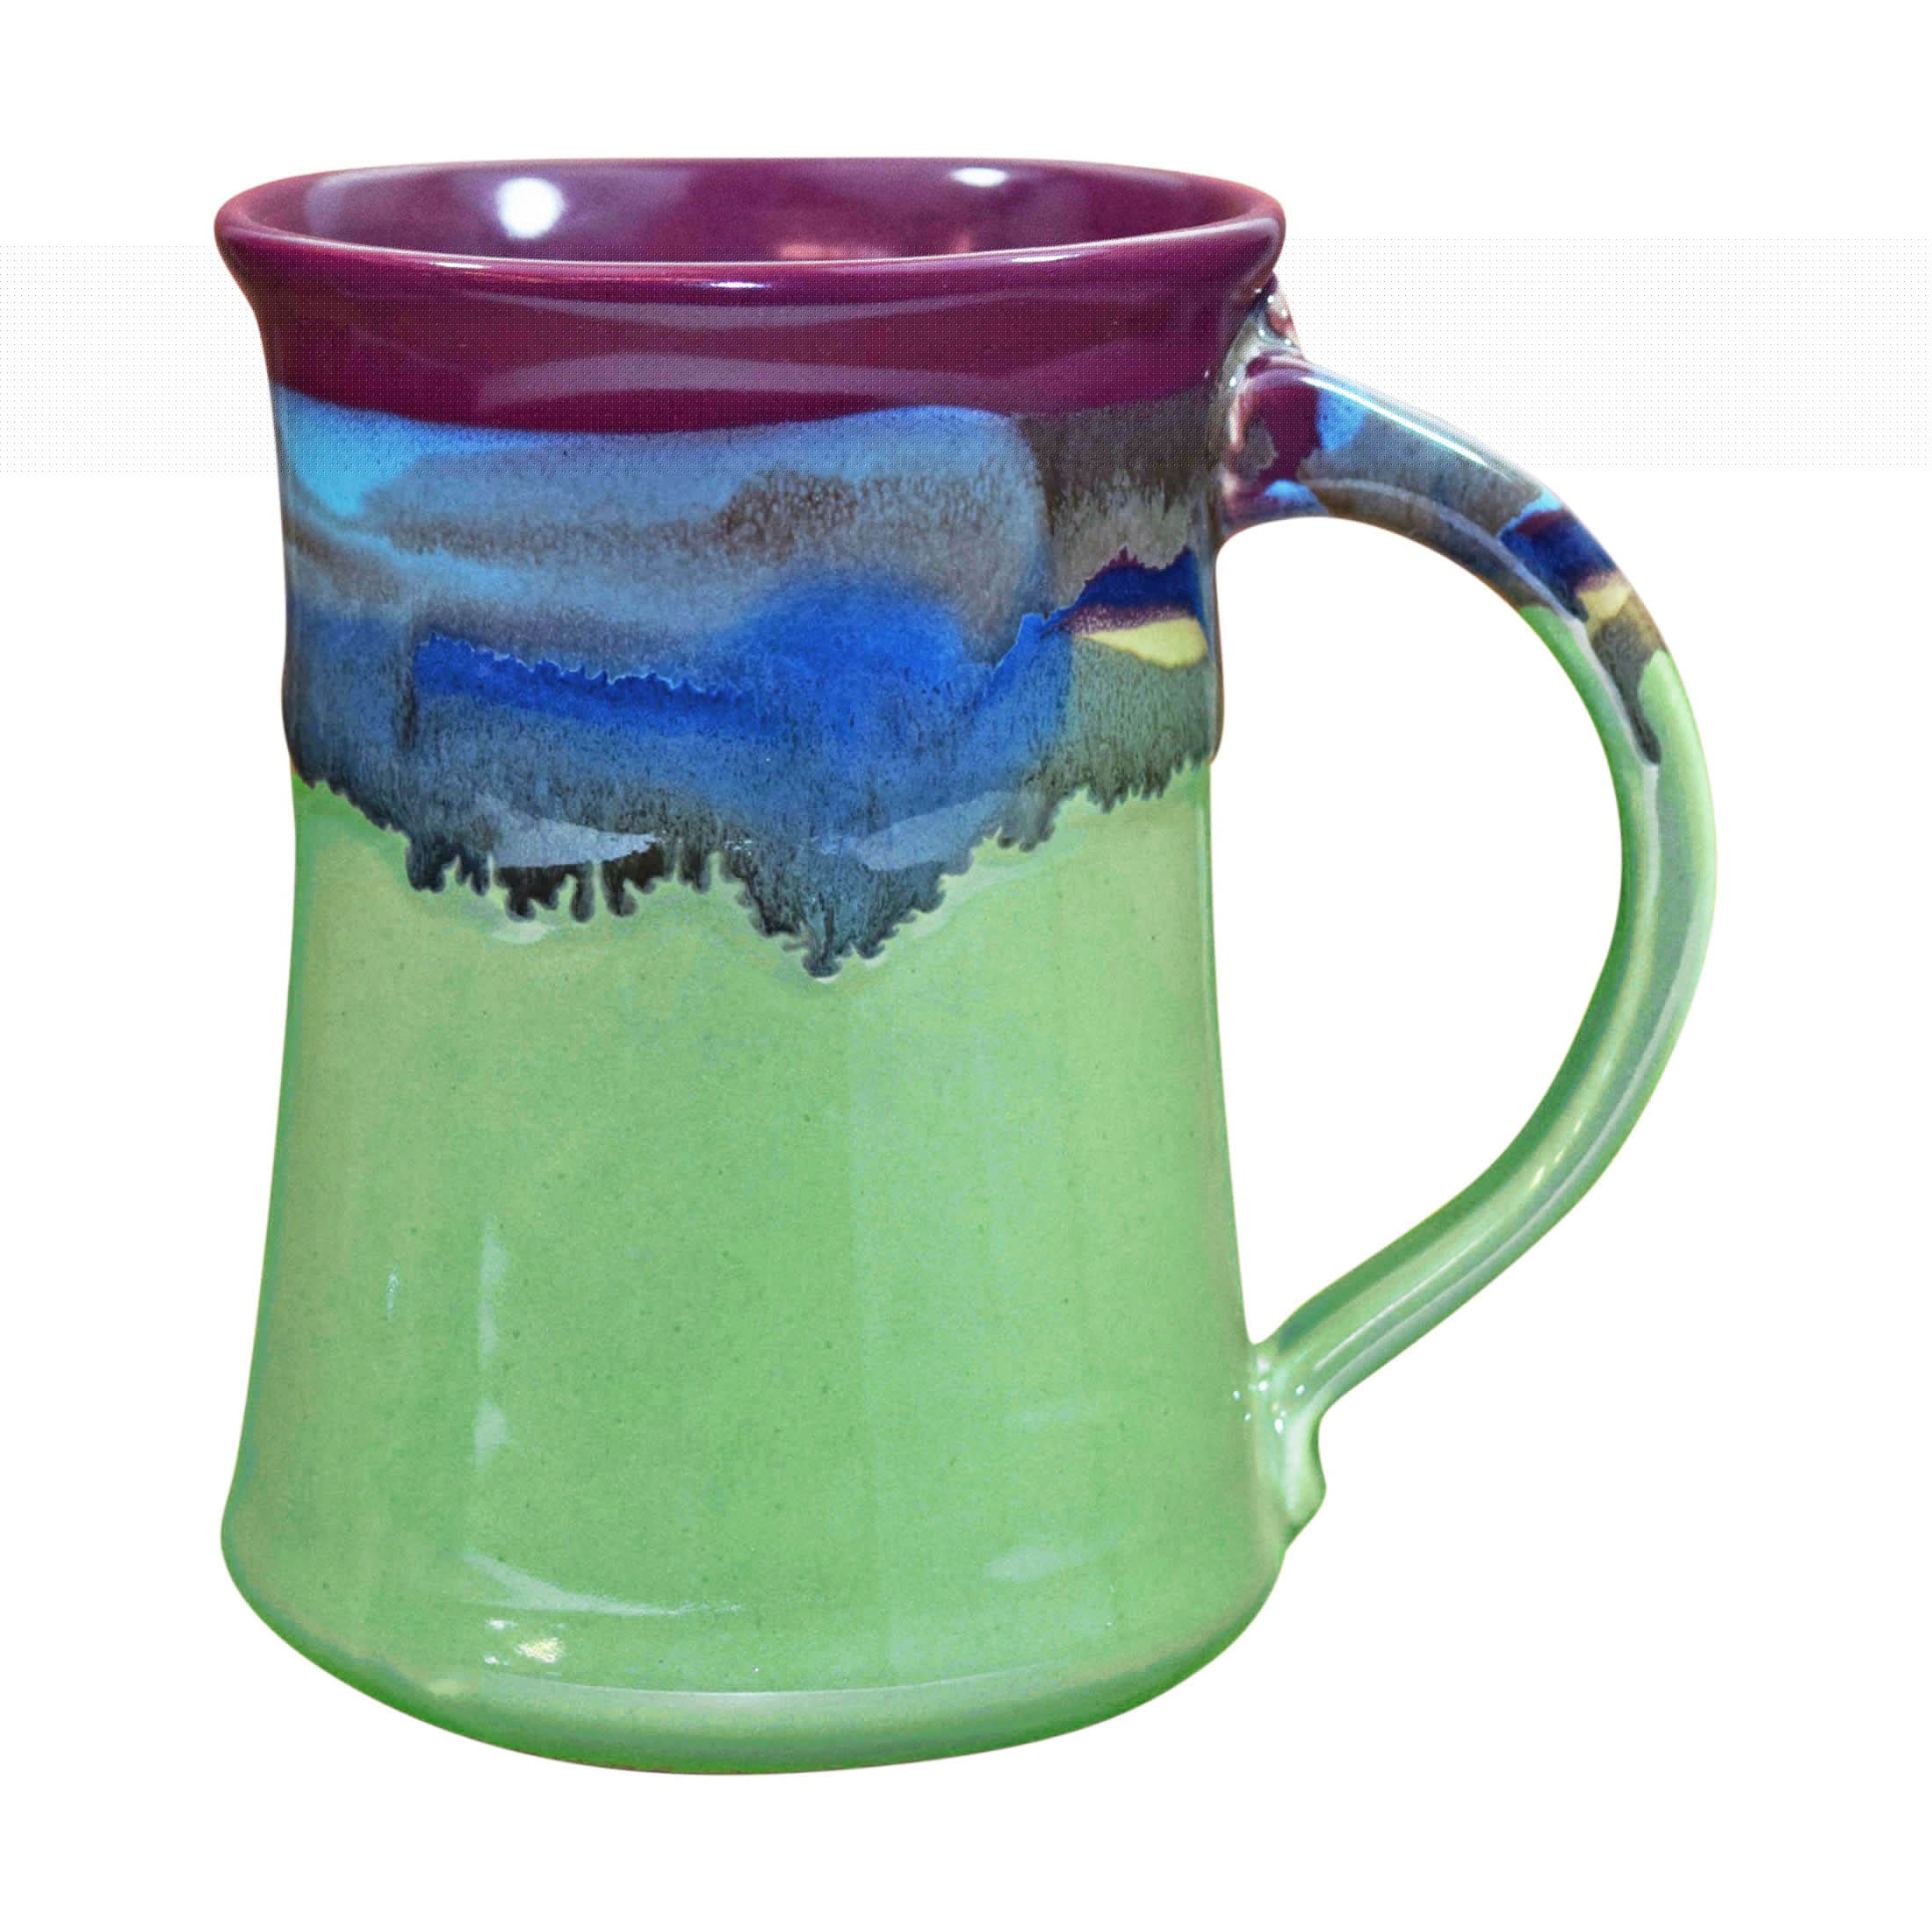 Clay in Motion 20 oz Mug - Large Handmade Pottery Ceramic ...